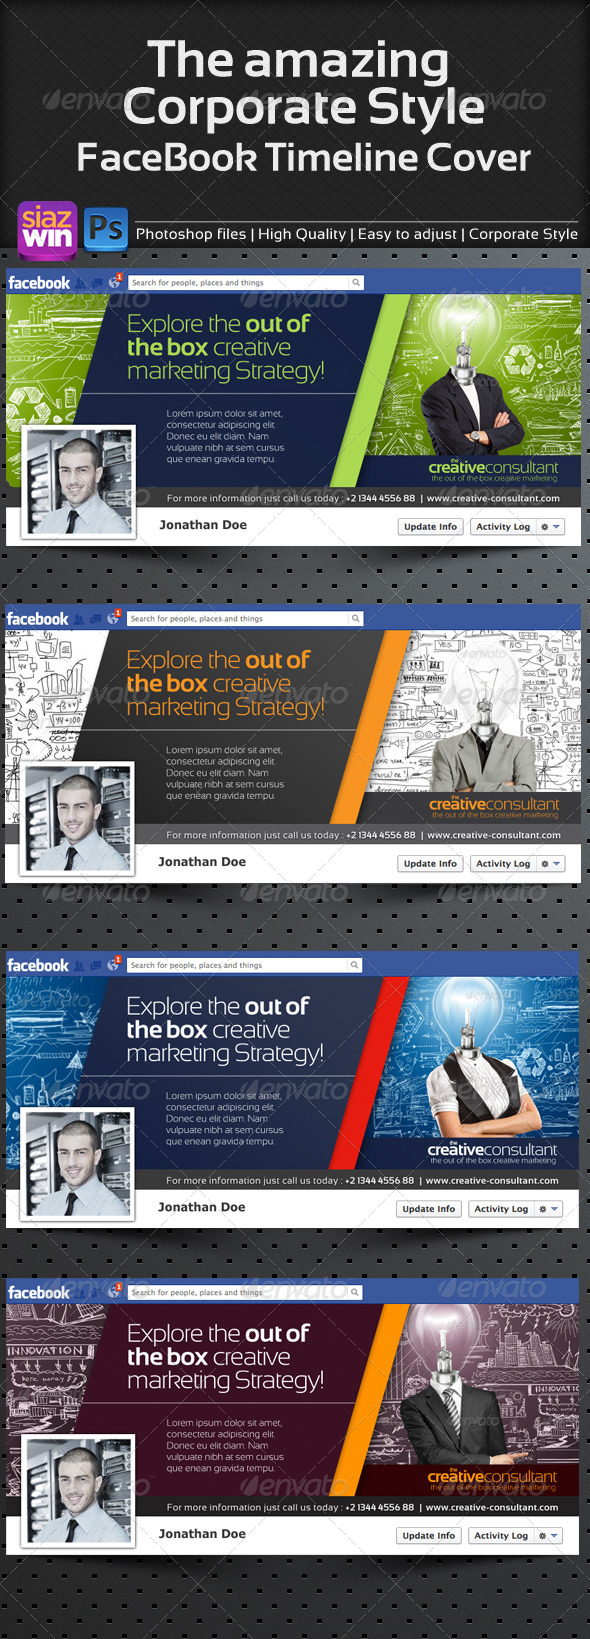 GraphicRiver The Amazing Corporate FB Timeline 01 4237848